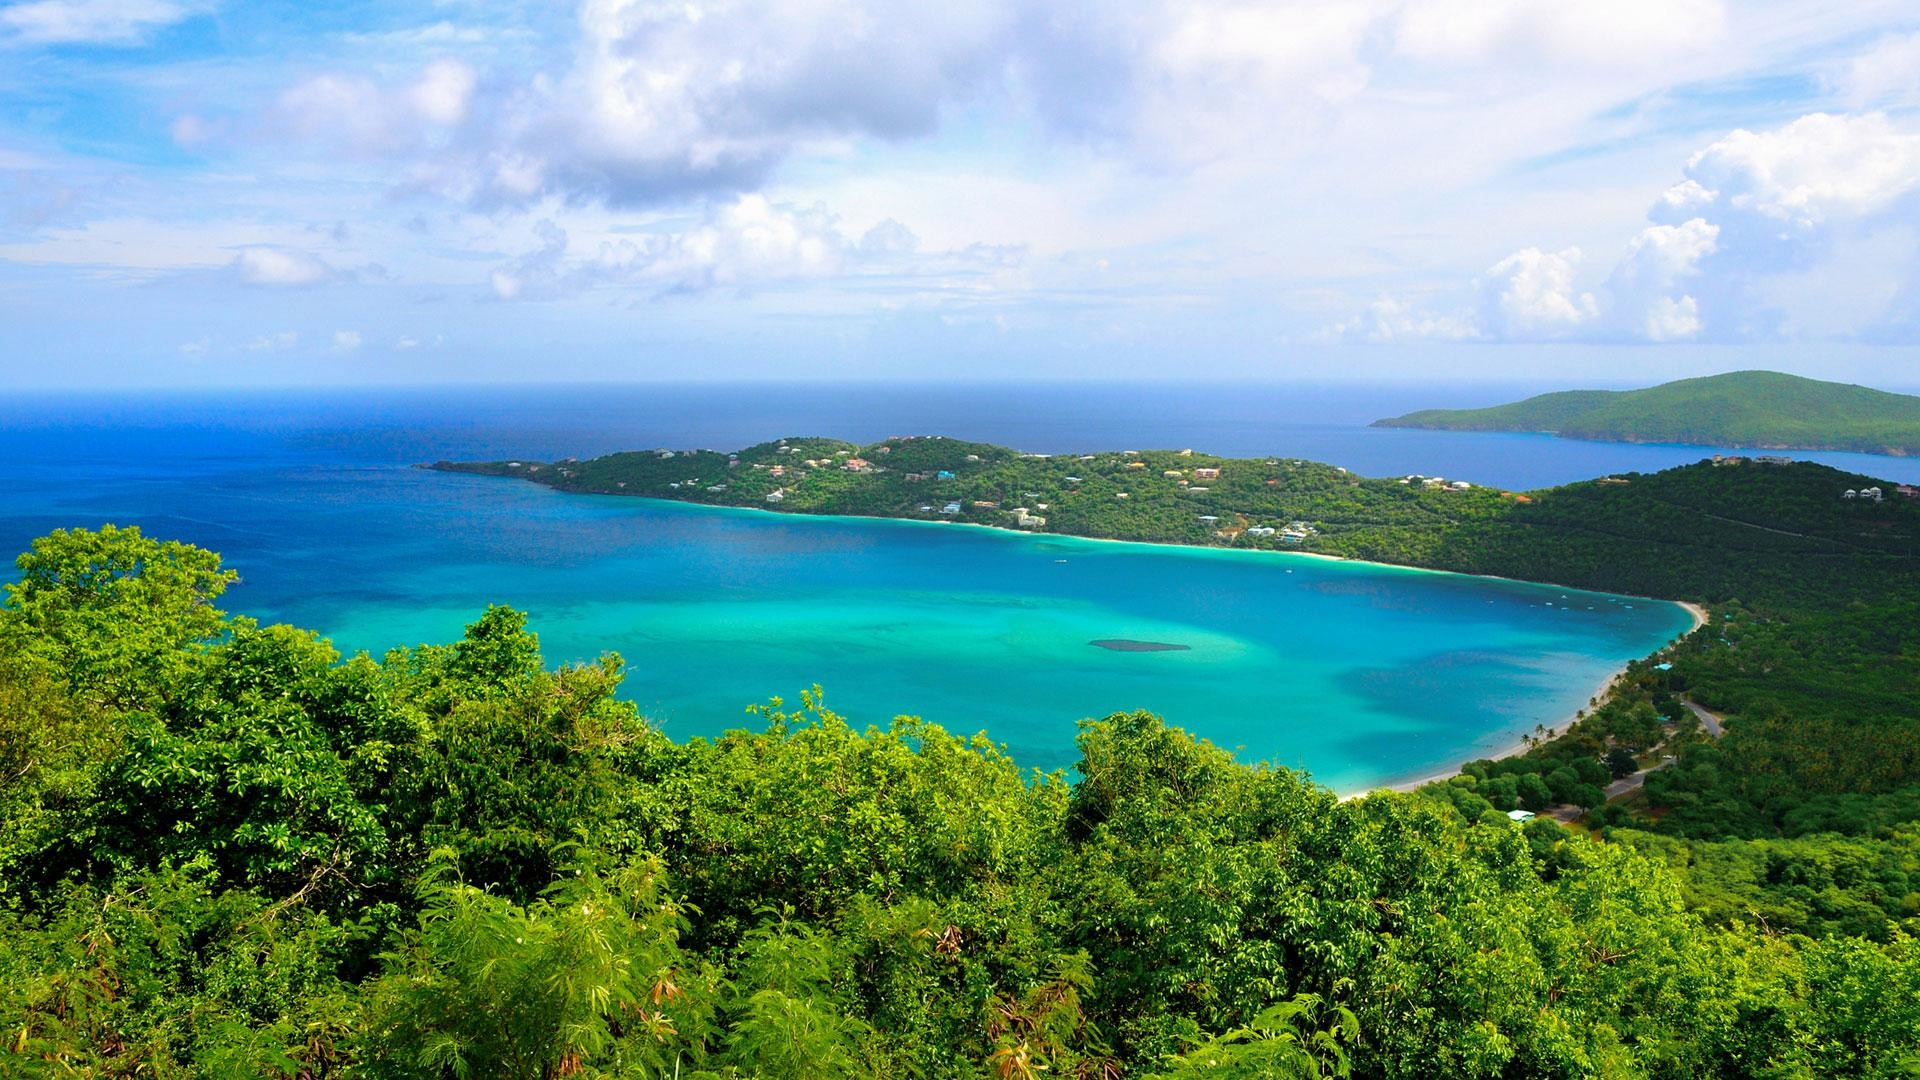 wallpaper.wiki-Image-of-Caribbean-PIC-WPC007755